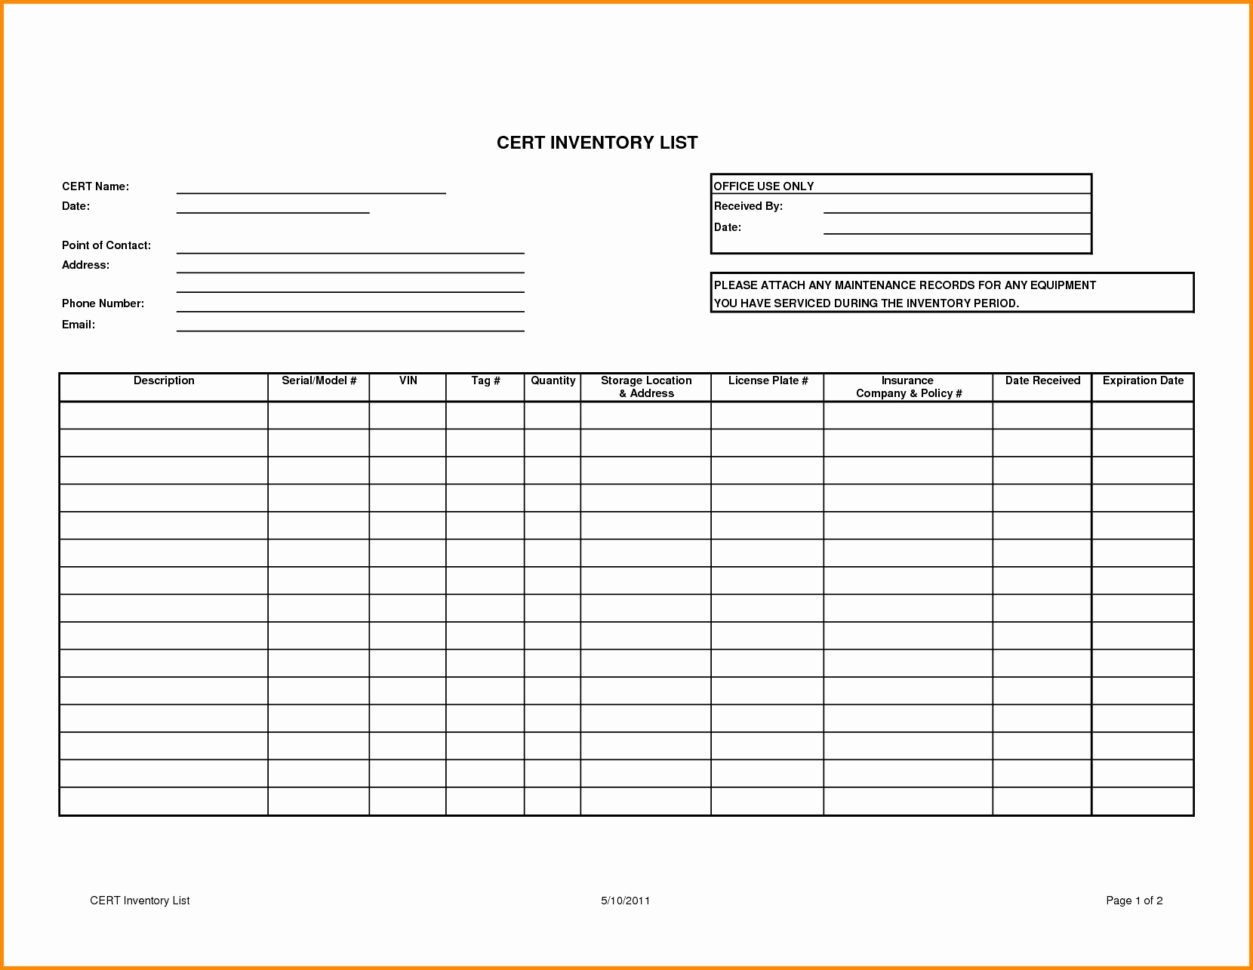 Cattle Spreadsheet For Cattle Inventory Spreadsheet Cow Calf Sheetes Liquor Template